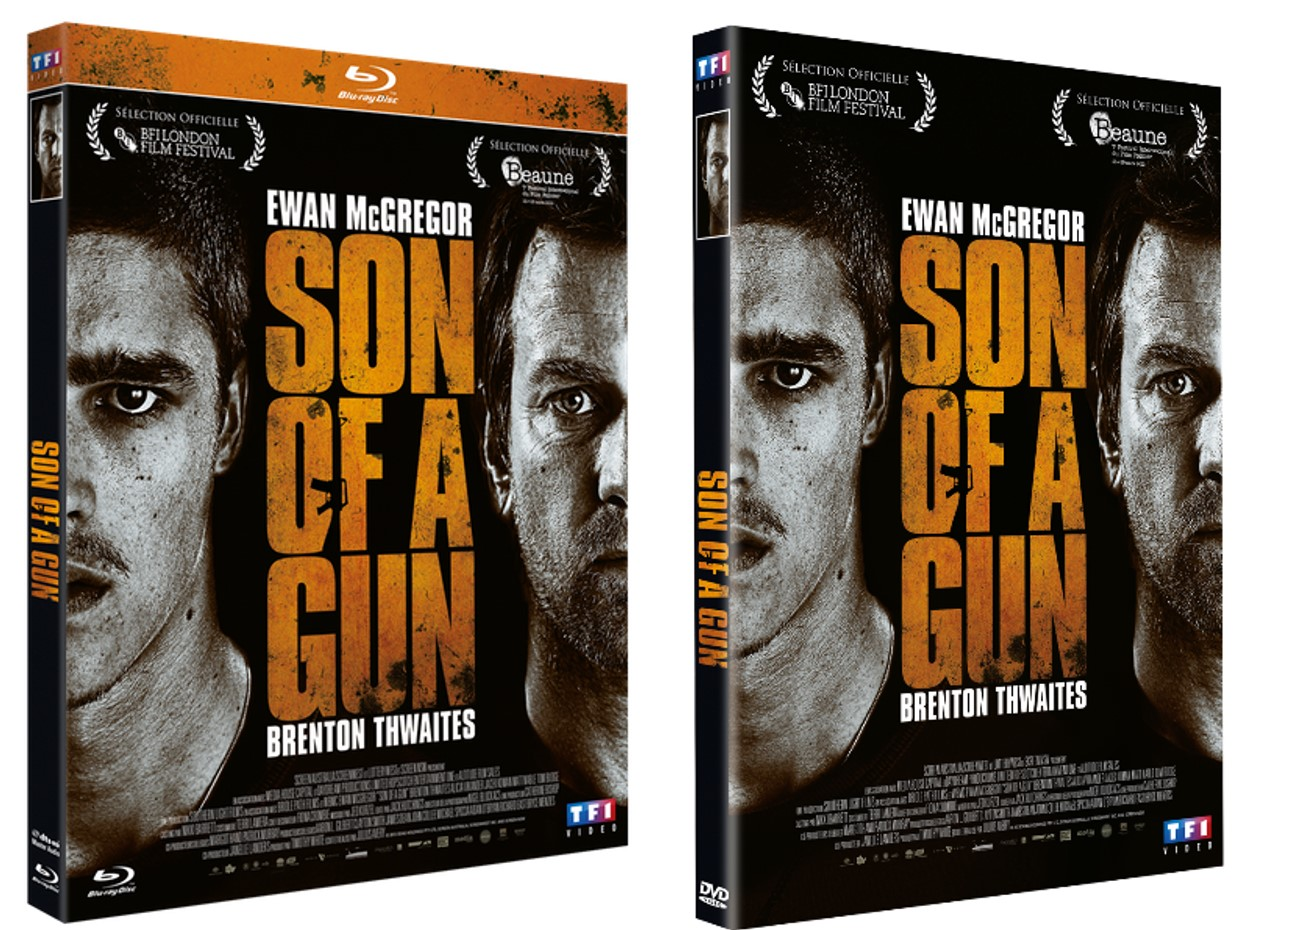 SON OF A GUN - Visuel Blu-ray et DVD FRANCE Jpeg sortie France Packshot 2015 Ewan McGregor - Go with the Blog